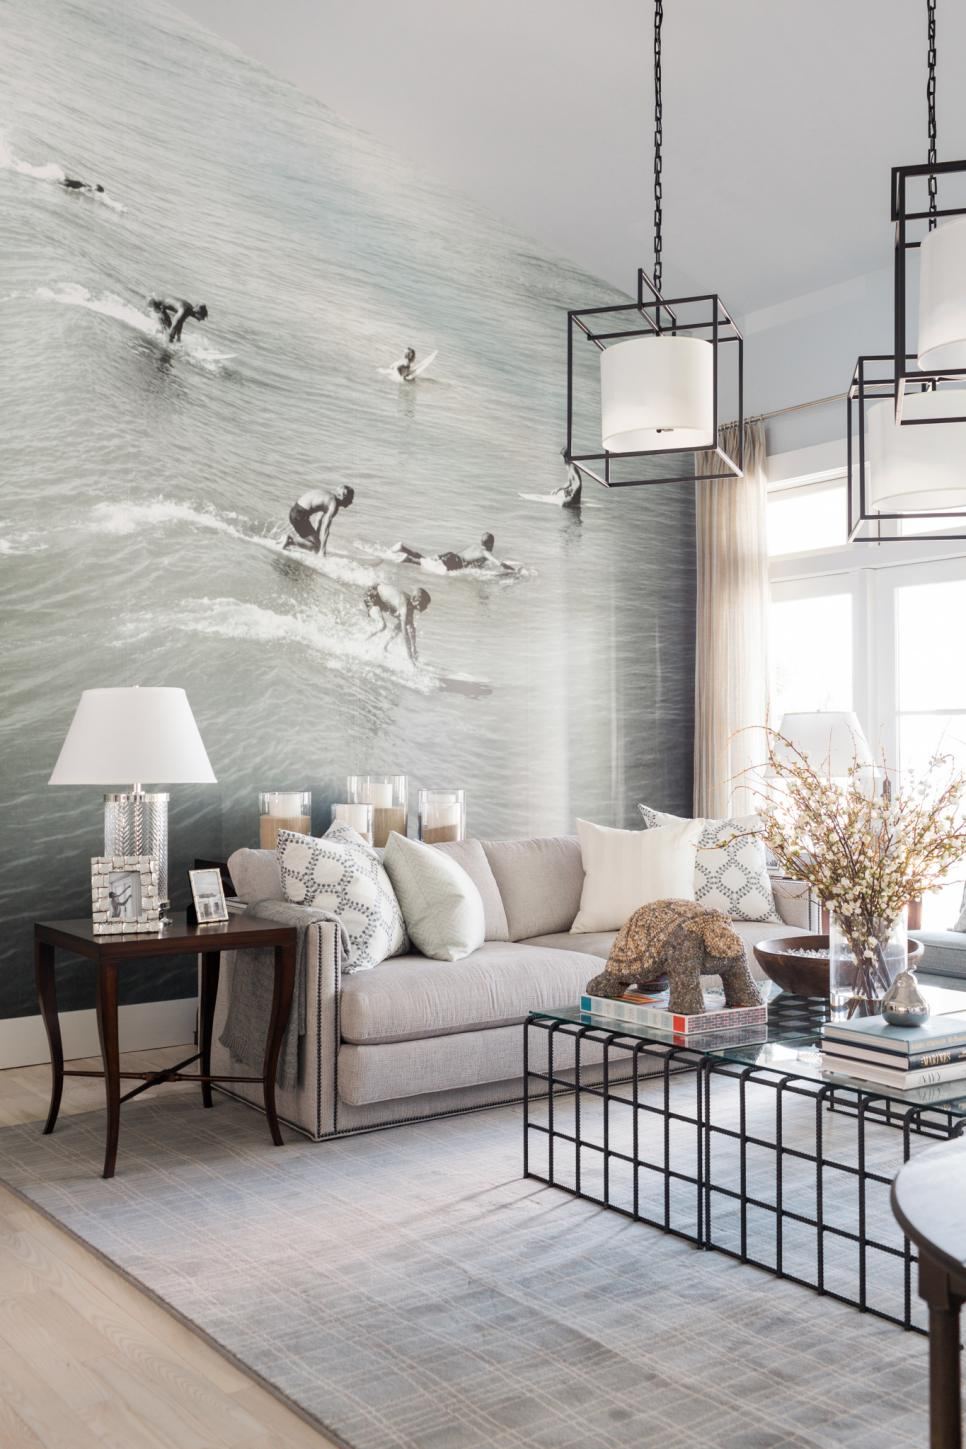 20 Wallpapers and Wall Murals that Make a Statement - BelivinDesign